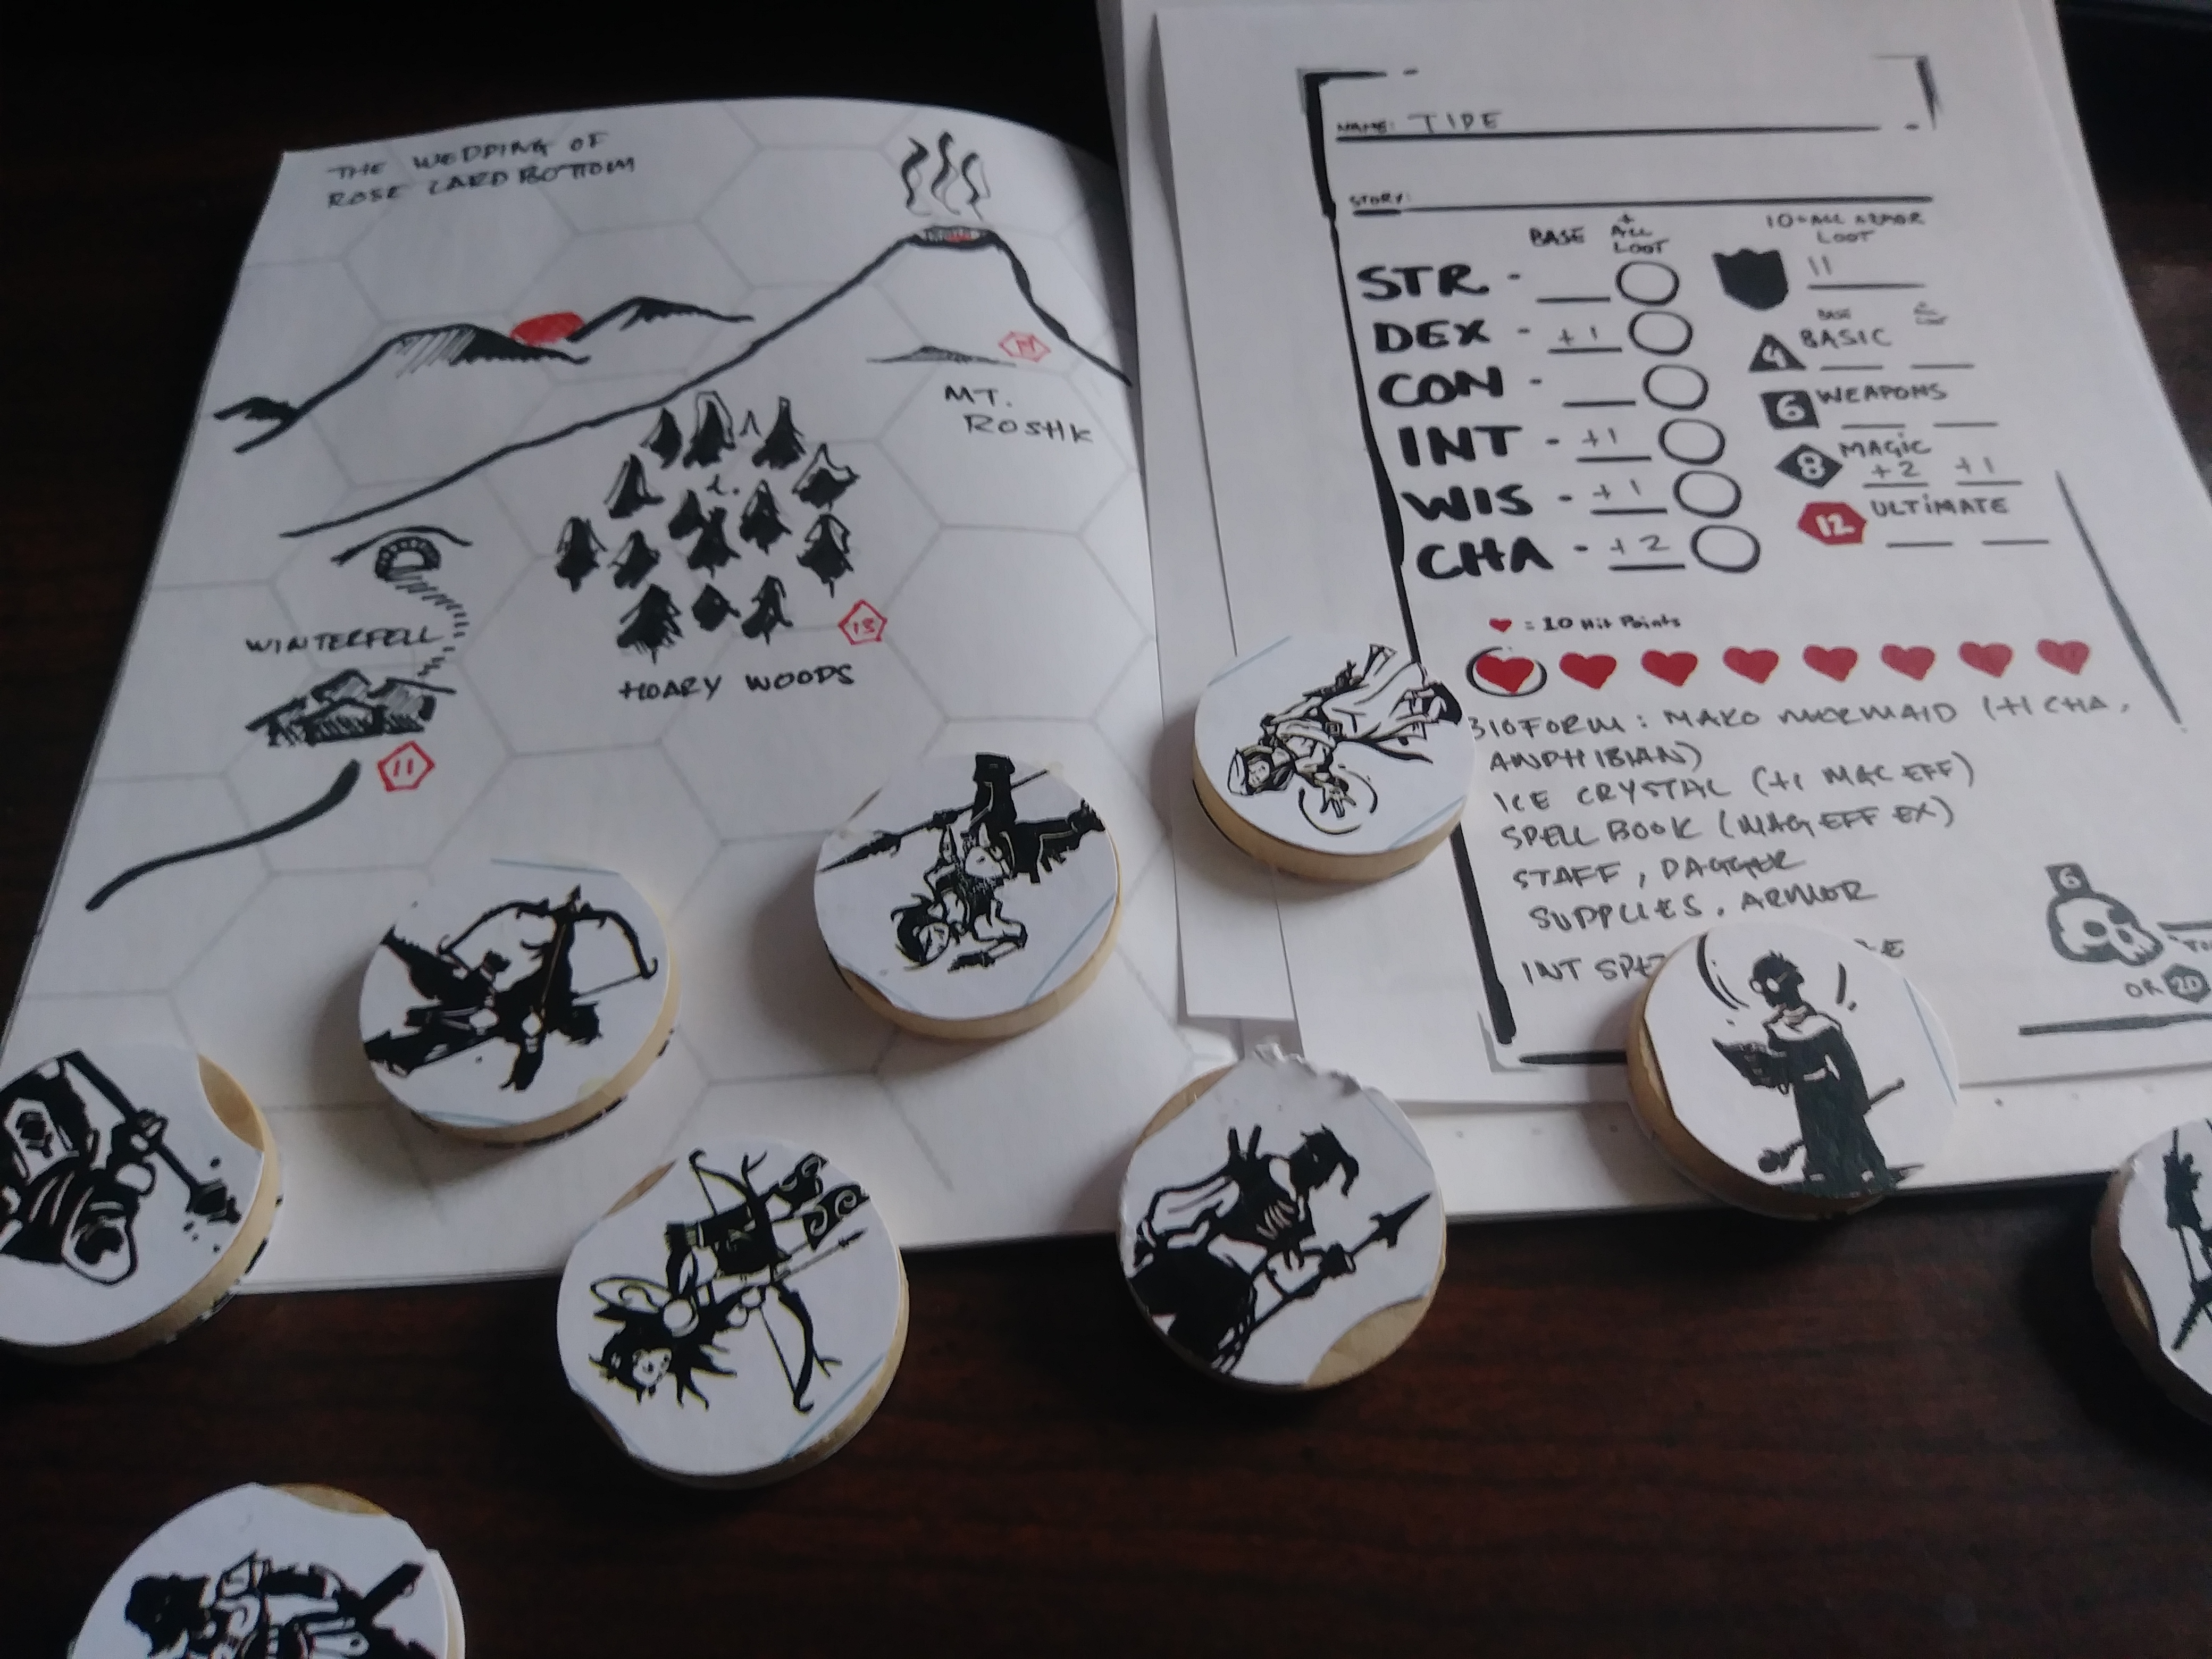 Getting ready for my first ICRPG game - INDEX CARD RPG - RUNEHAMMER